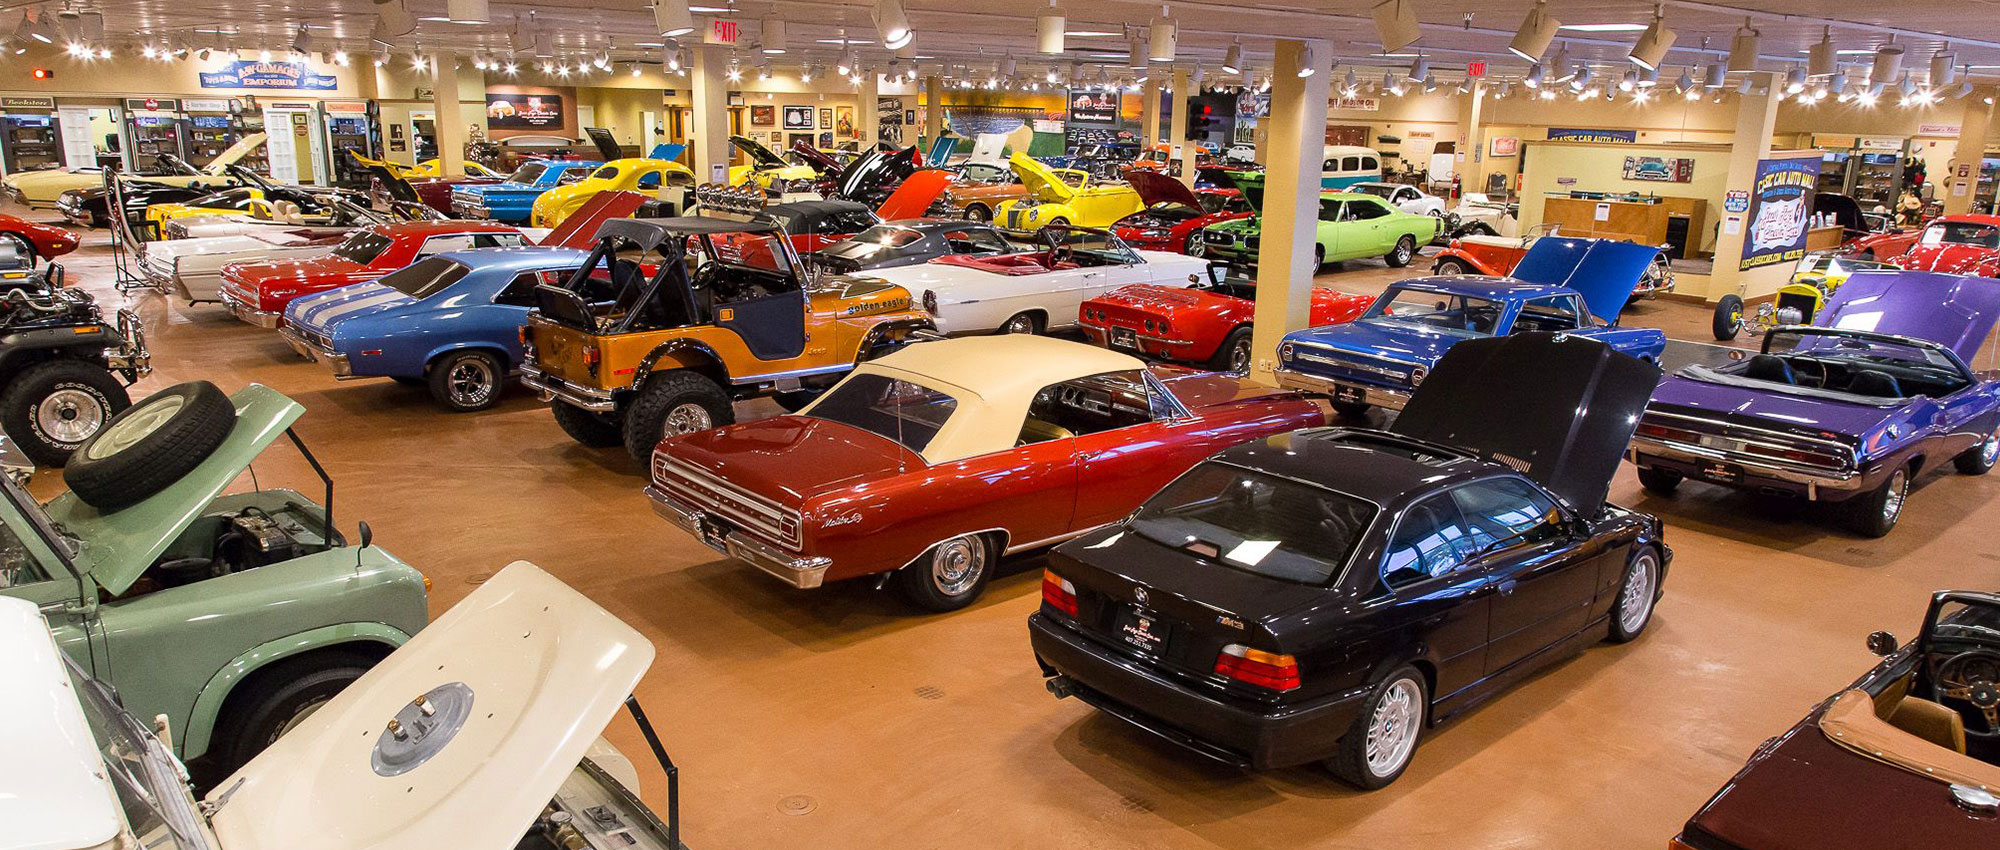 Just Toys Classic Cars - Kissimmee car show saturday